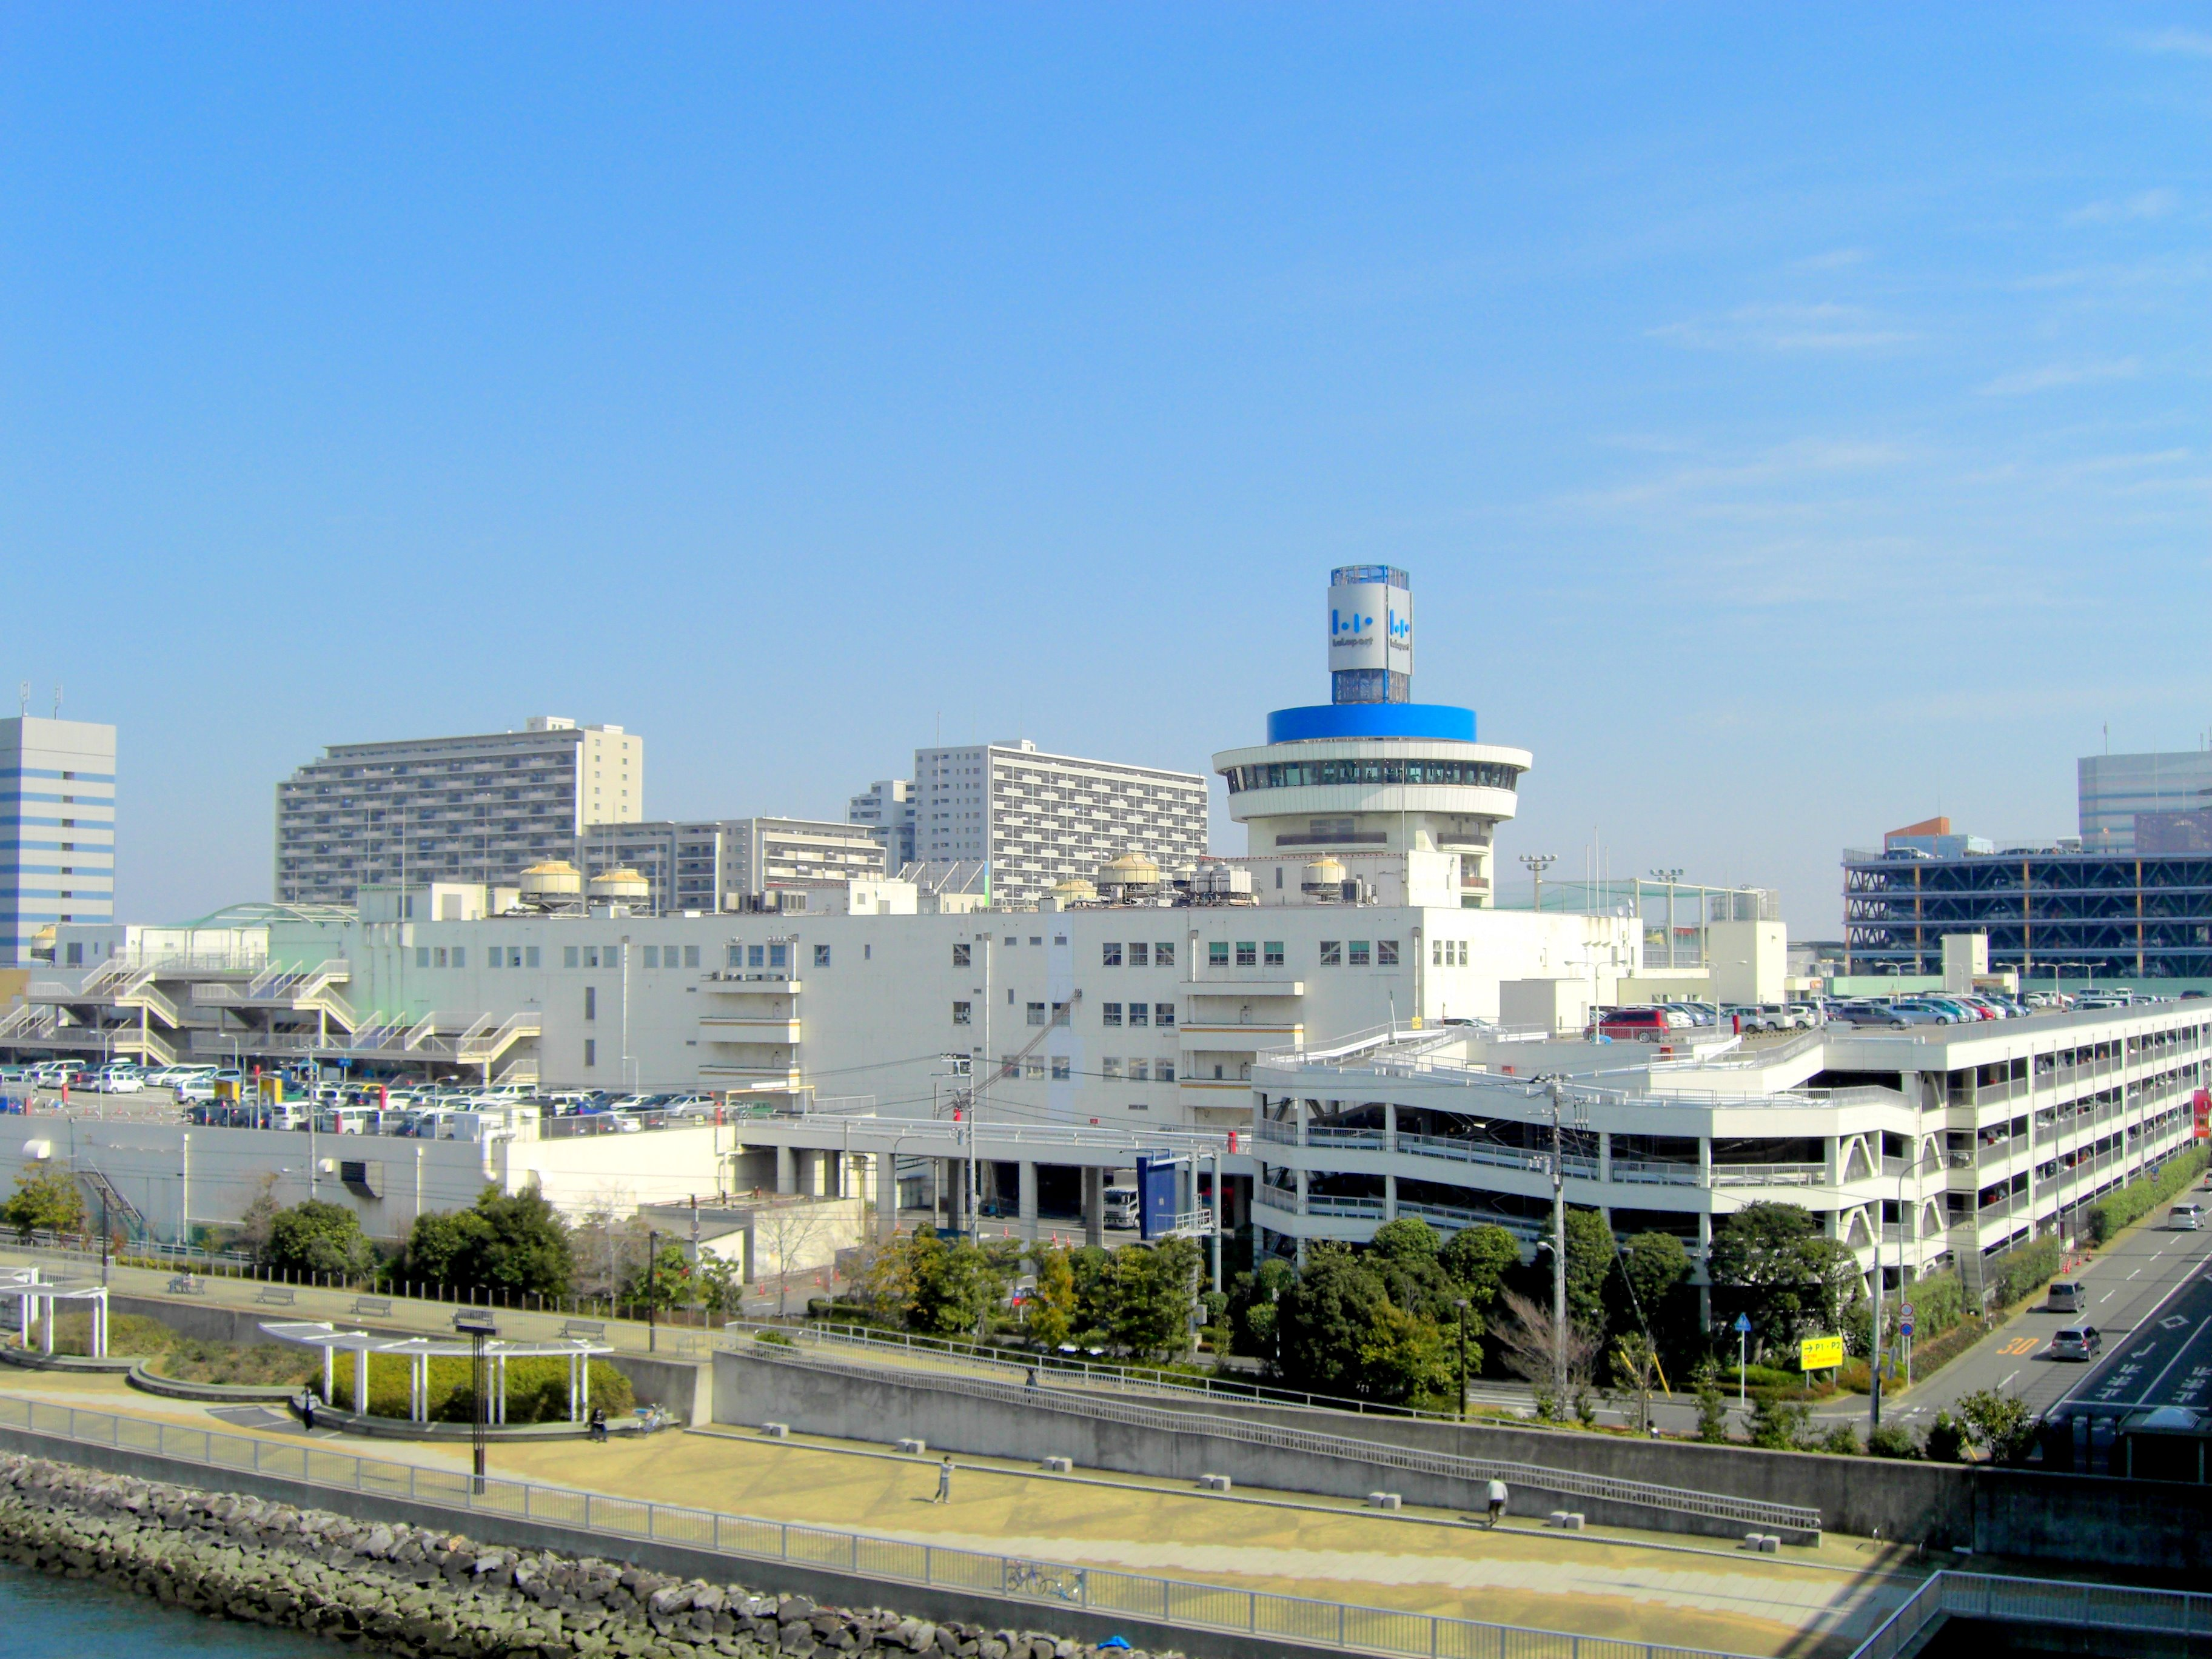 Funabashi Japan  City pictures : LaLaport TOKYO BAY Wikimedia Commons